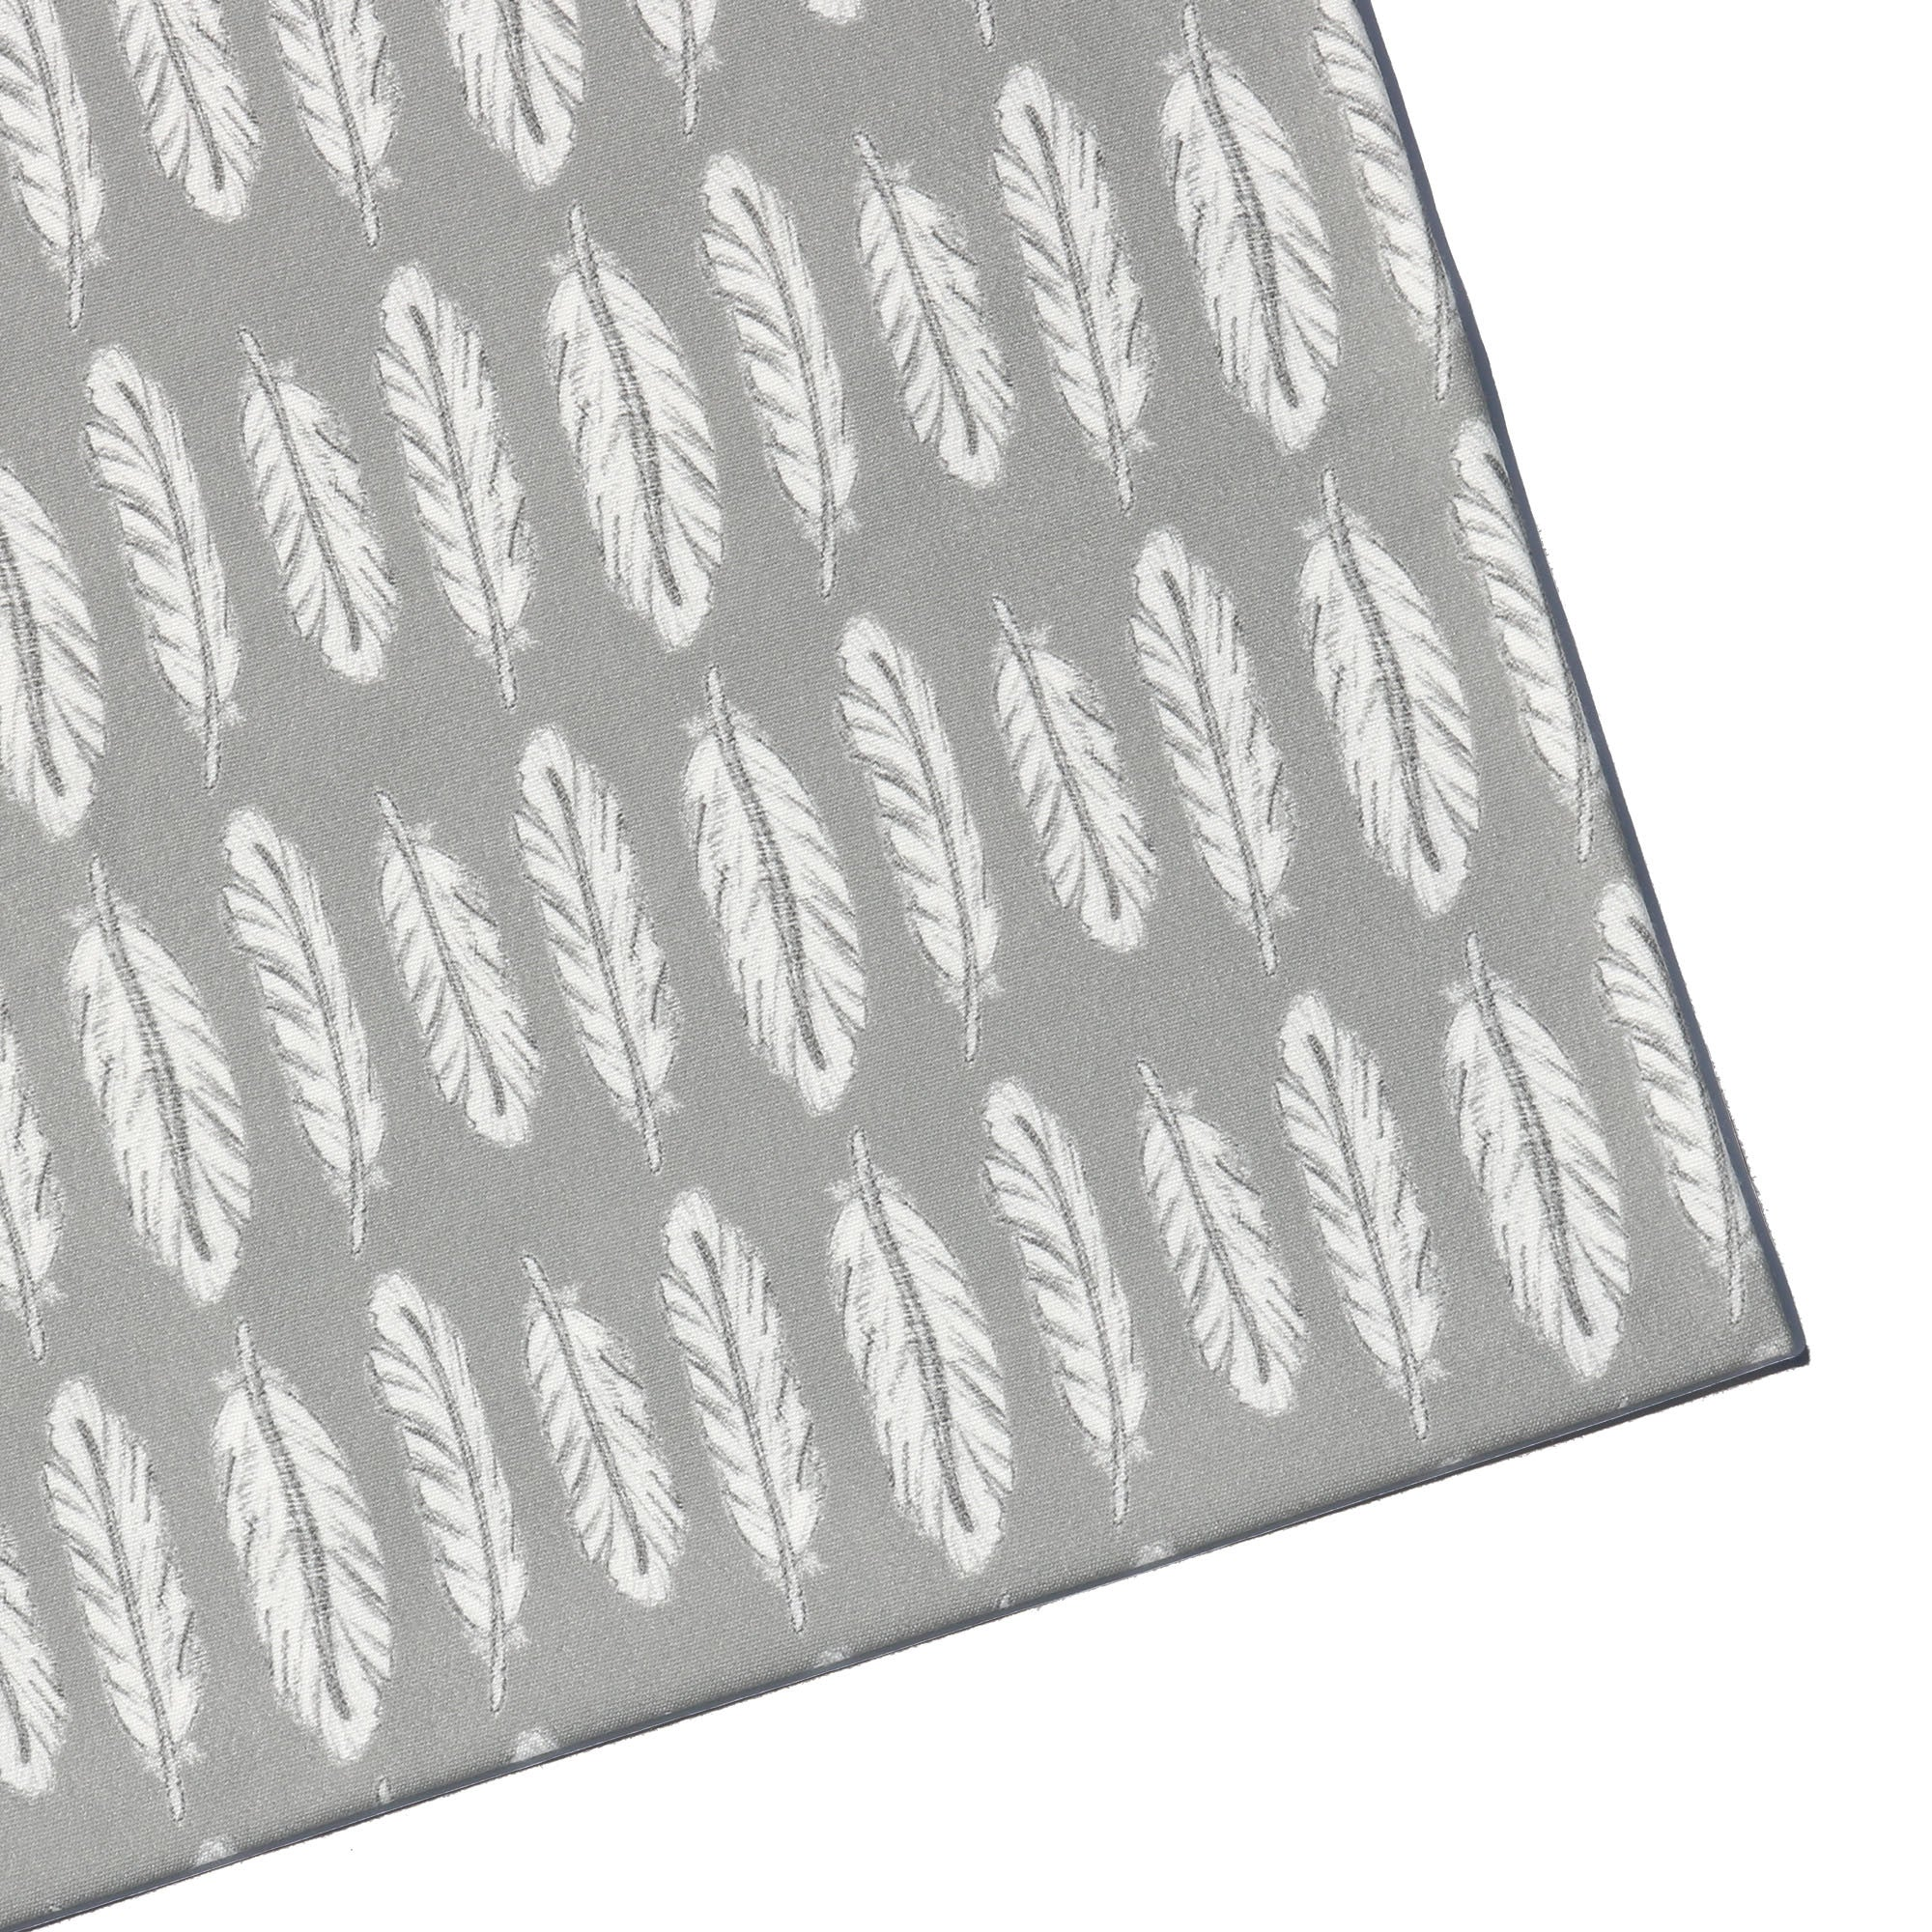 Ready to Ship - Swaddle - Feathers with Grey Background